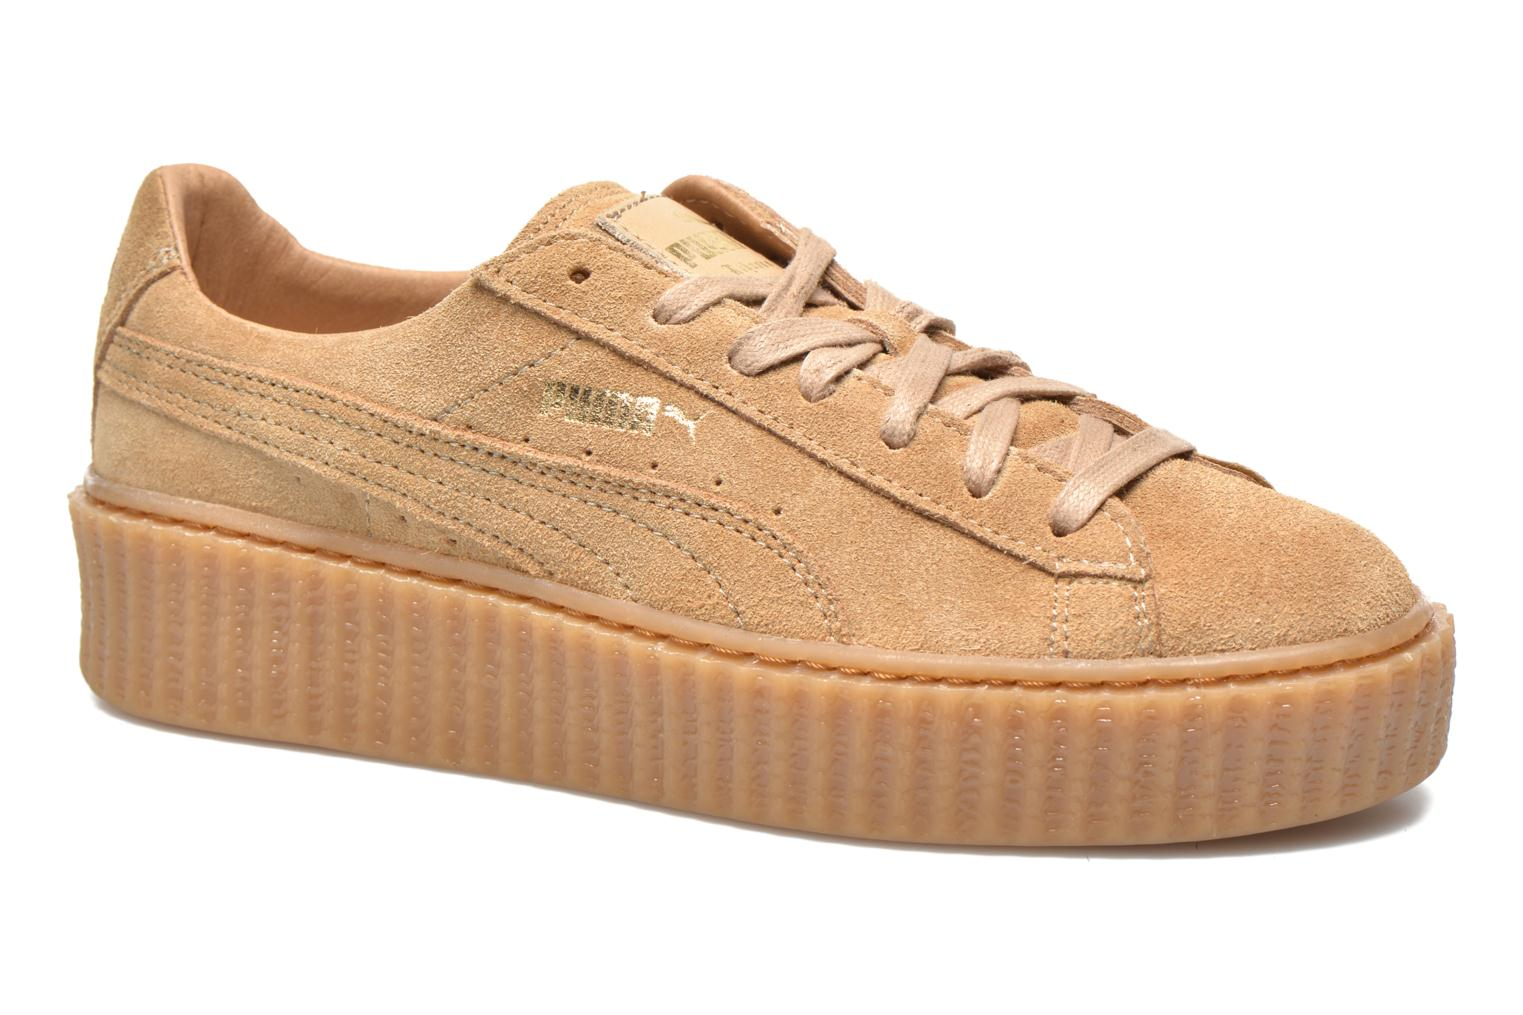 puma creepers marron